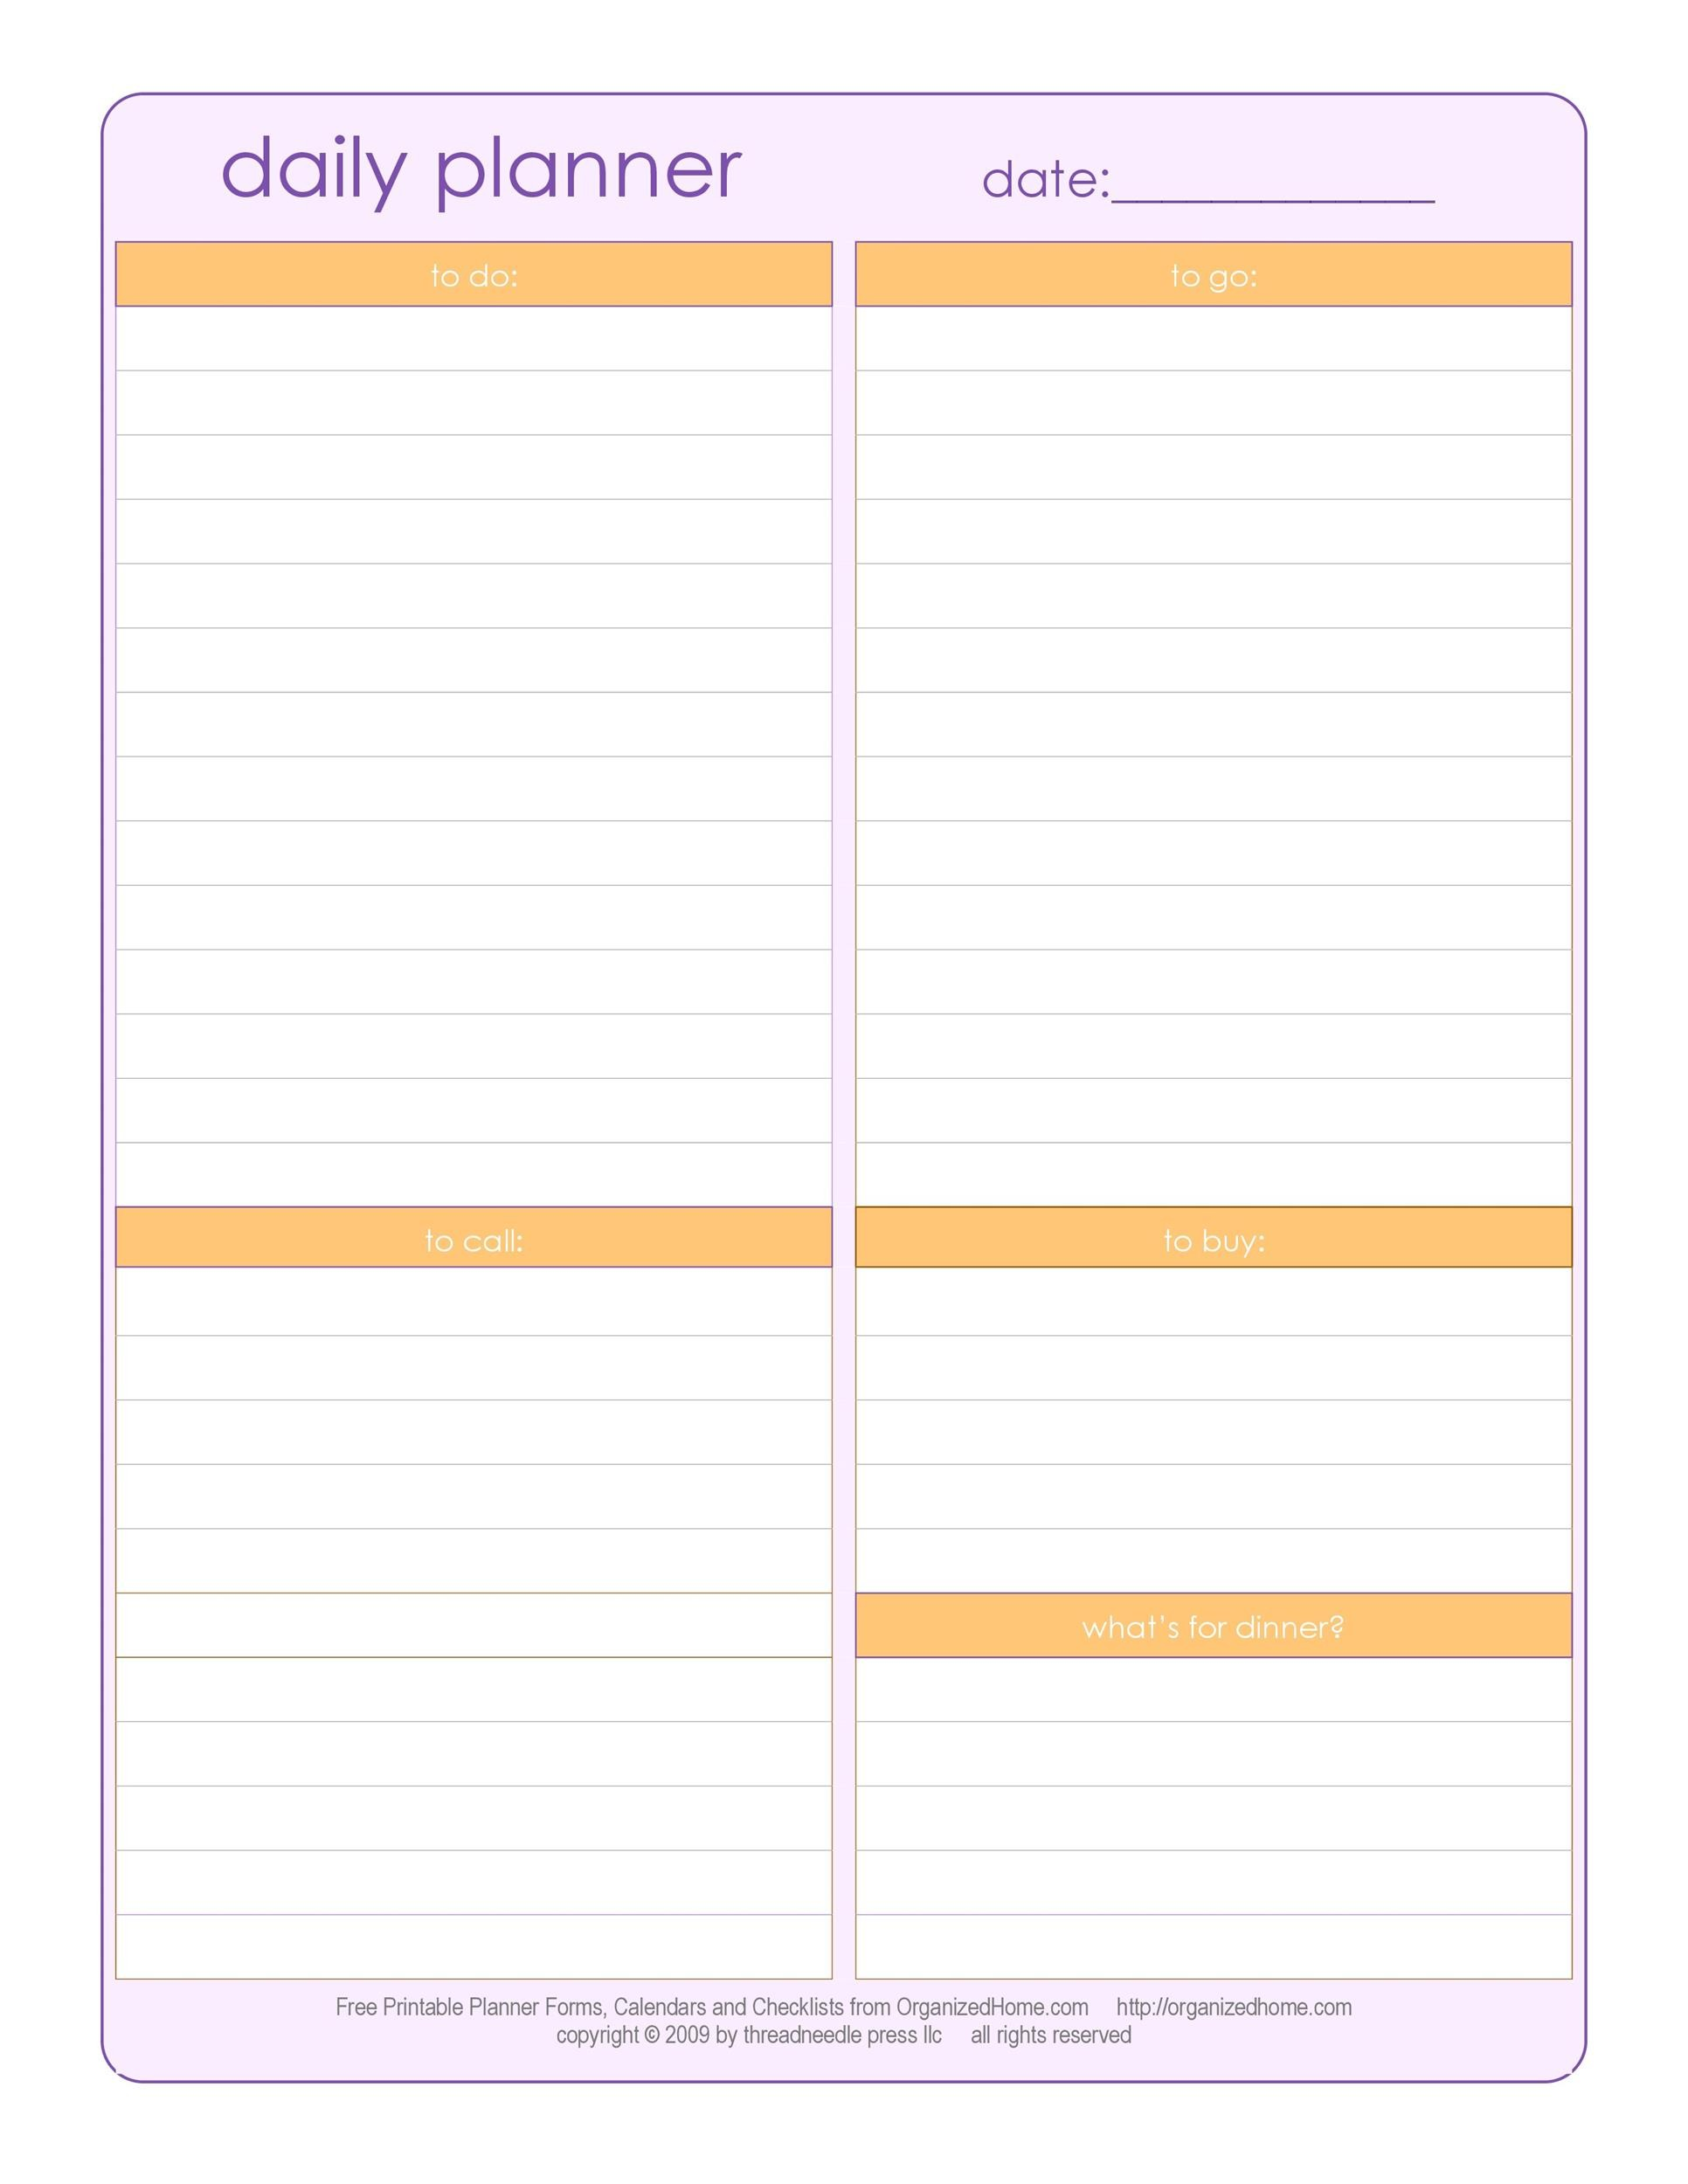 photo about Daily Calendar Template known as 40+ Printable Everyday Planner Templates (Absolutely free) ᐅ Template Lab